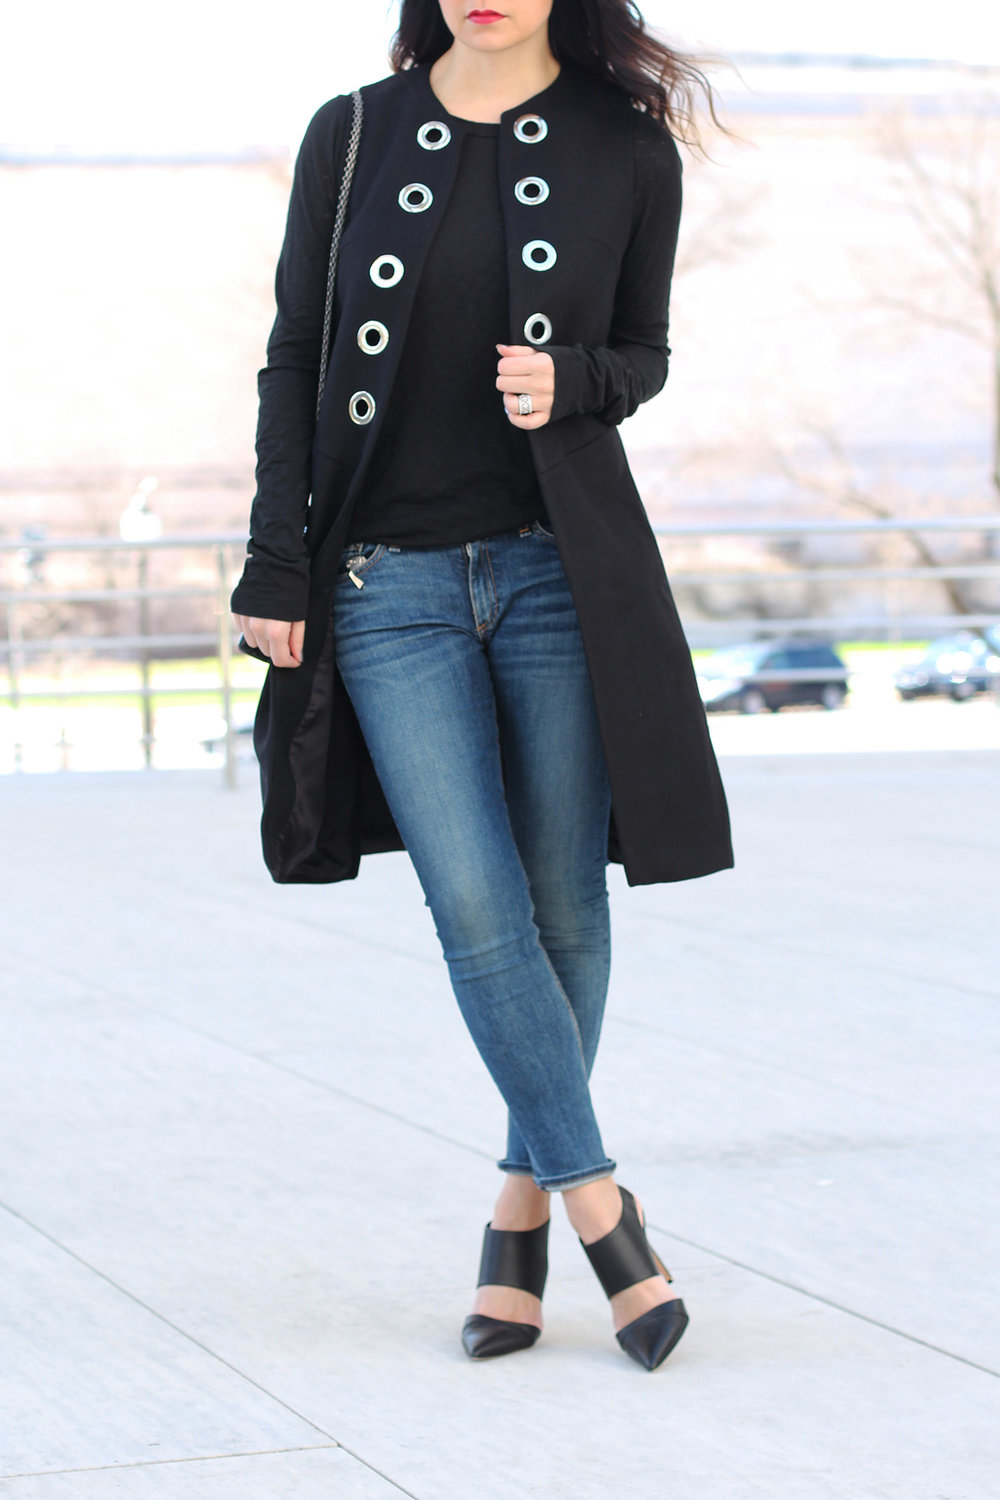 Long Vest Outfit, Rag and Bone Shirt, Manolo Blahnik Heels